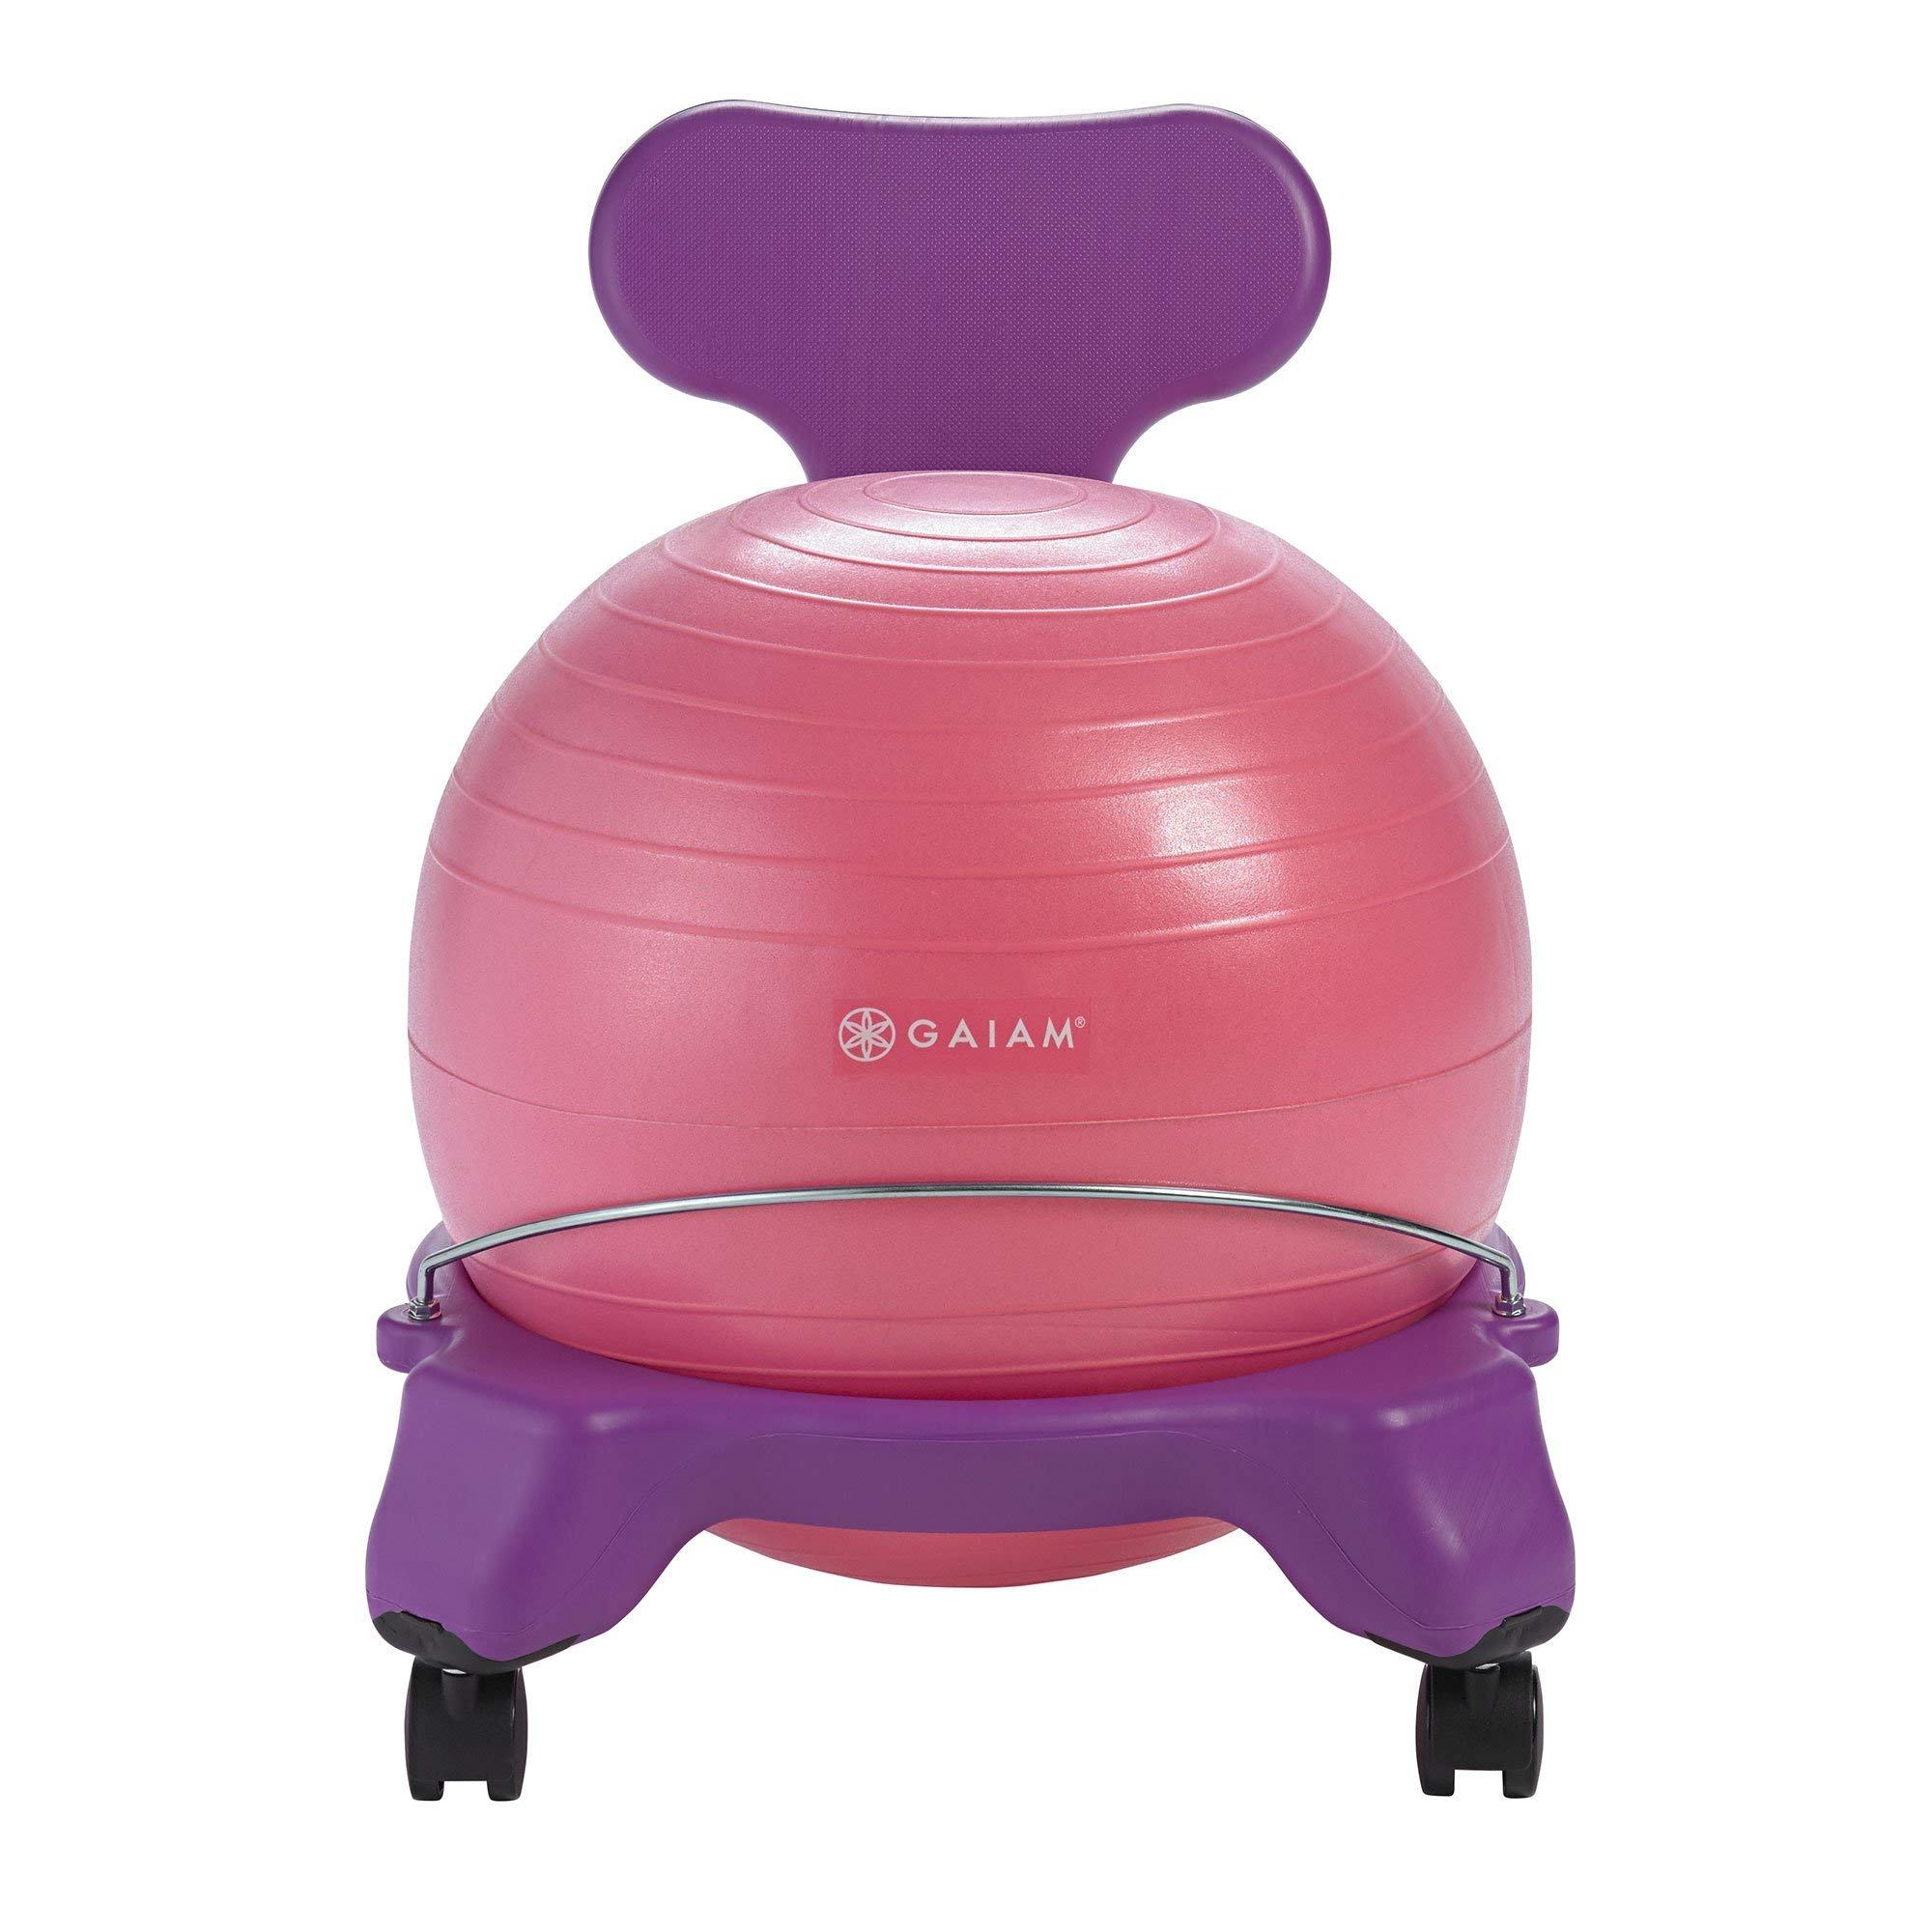 Gaiam Kids Balance Ball Chair - Classic Children's Stability Ball Chair, Alternative School Classroom Flexible Desk Seating for Active Students with Satisfaction Guarantee, Purple/Pink (Renewed) by Gaiam